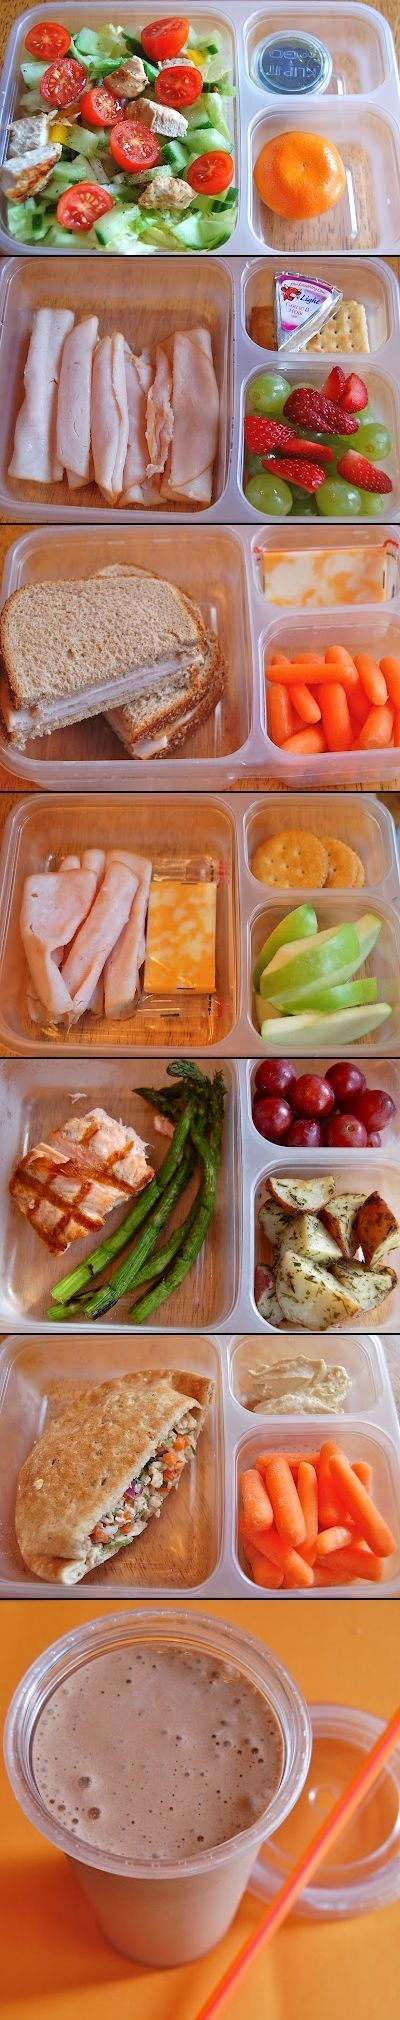 Healthy Lunch Ideas // make a bunch and stack in fridge for work, school, etc. #prepday #resolutions